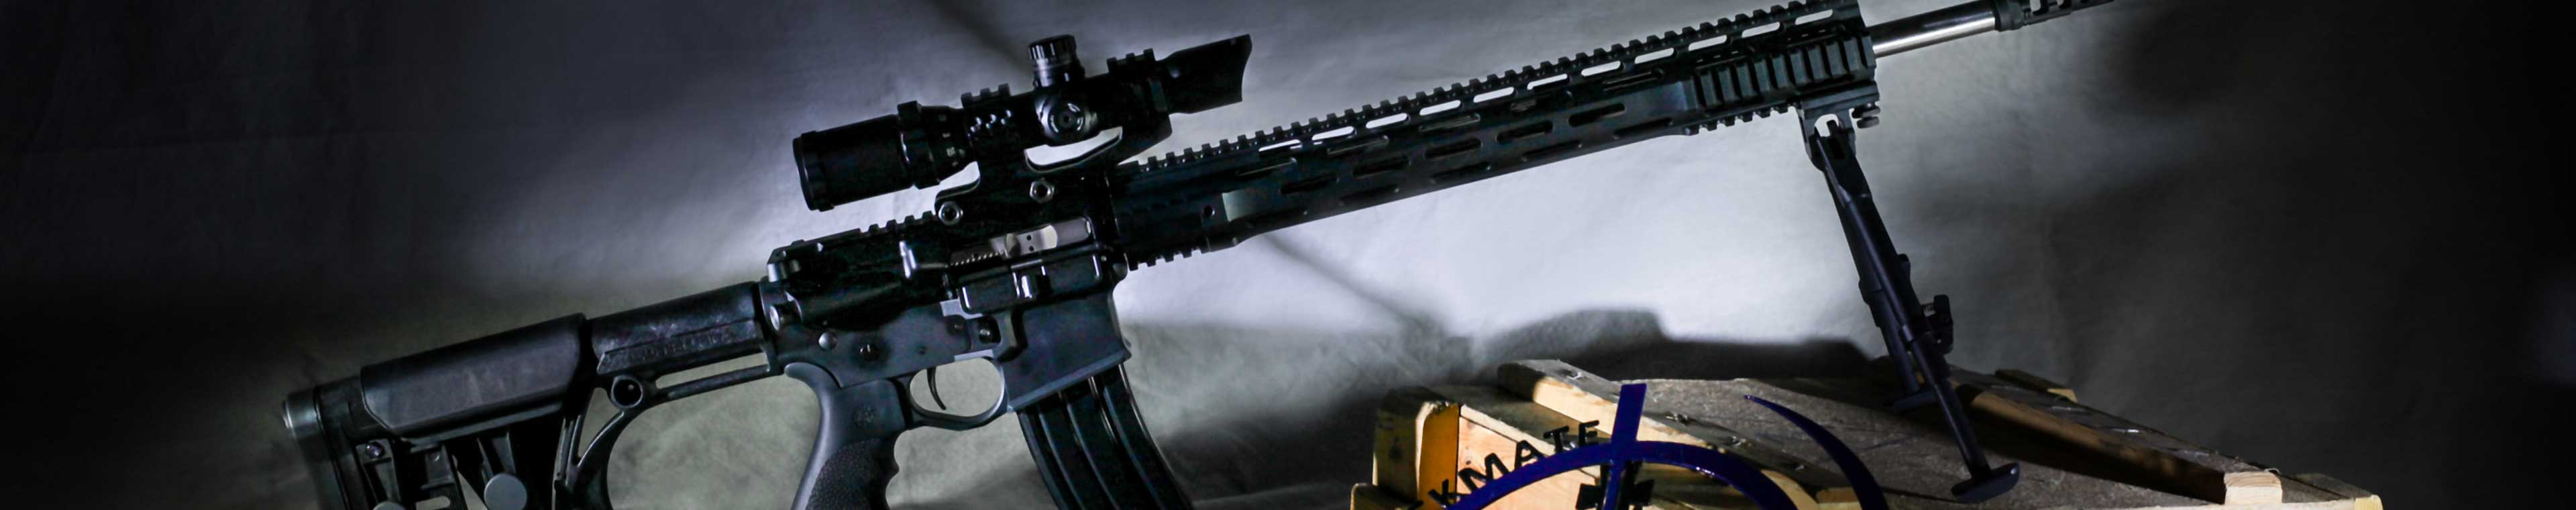 MAGAZINES, OPTICS, & ACCESSORIES